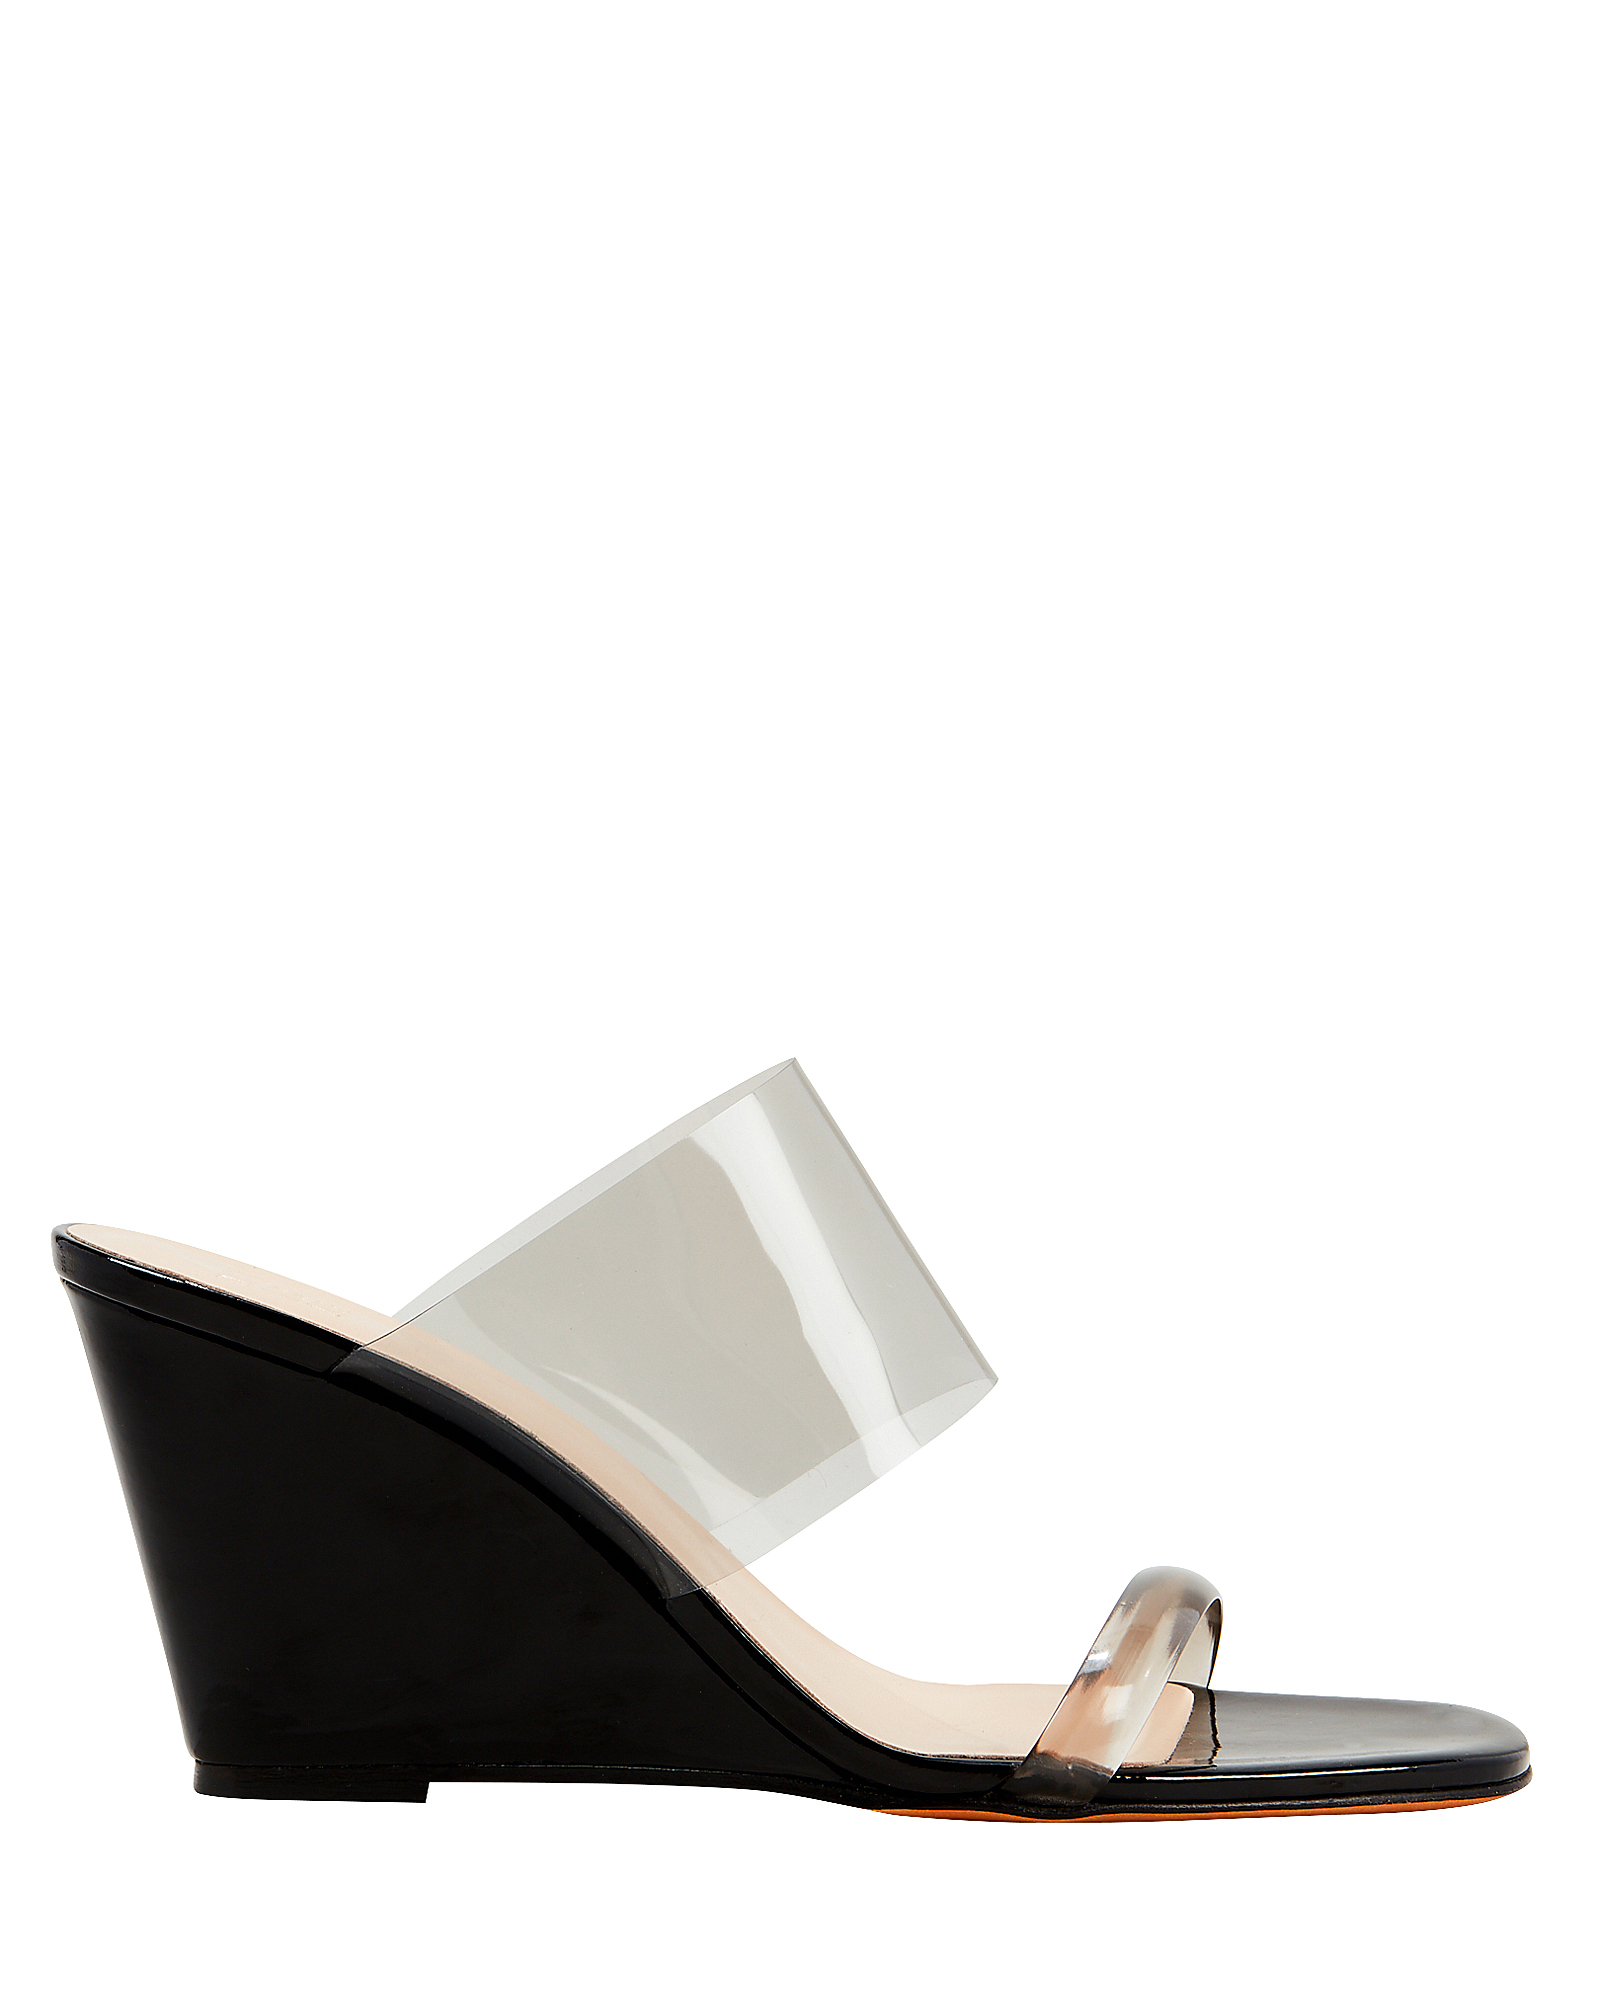 Maryam Nassir Zadeh Olympia Leather Sandals